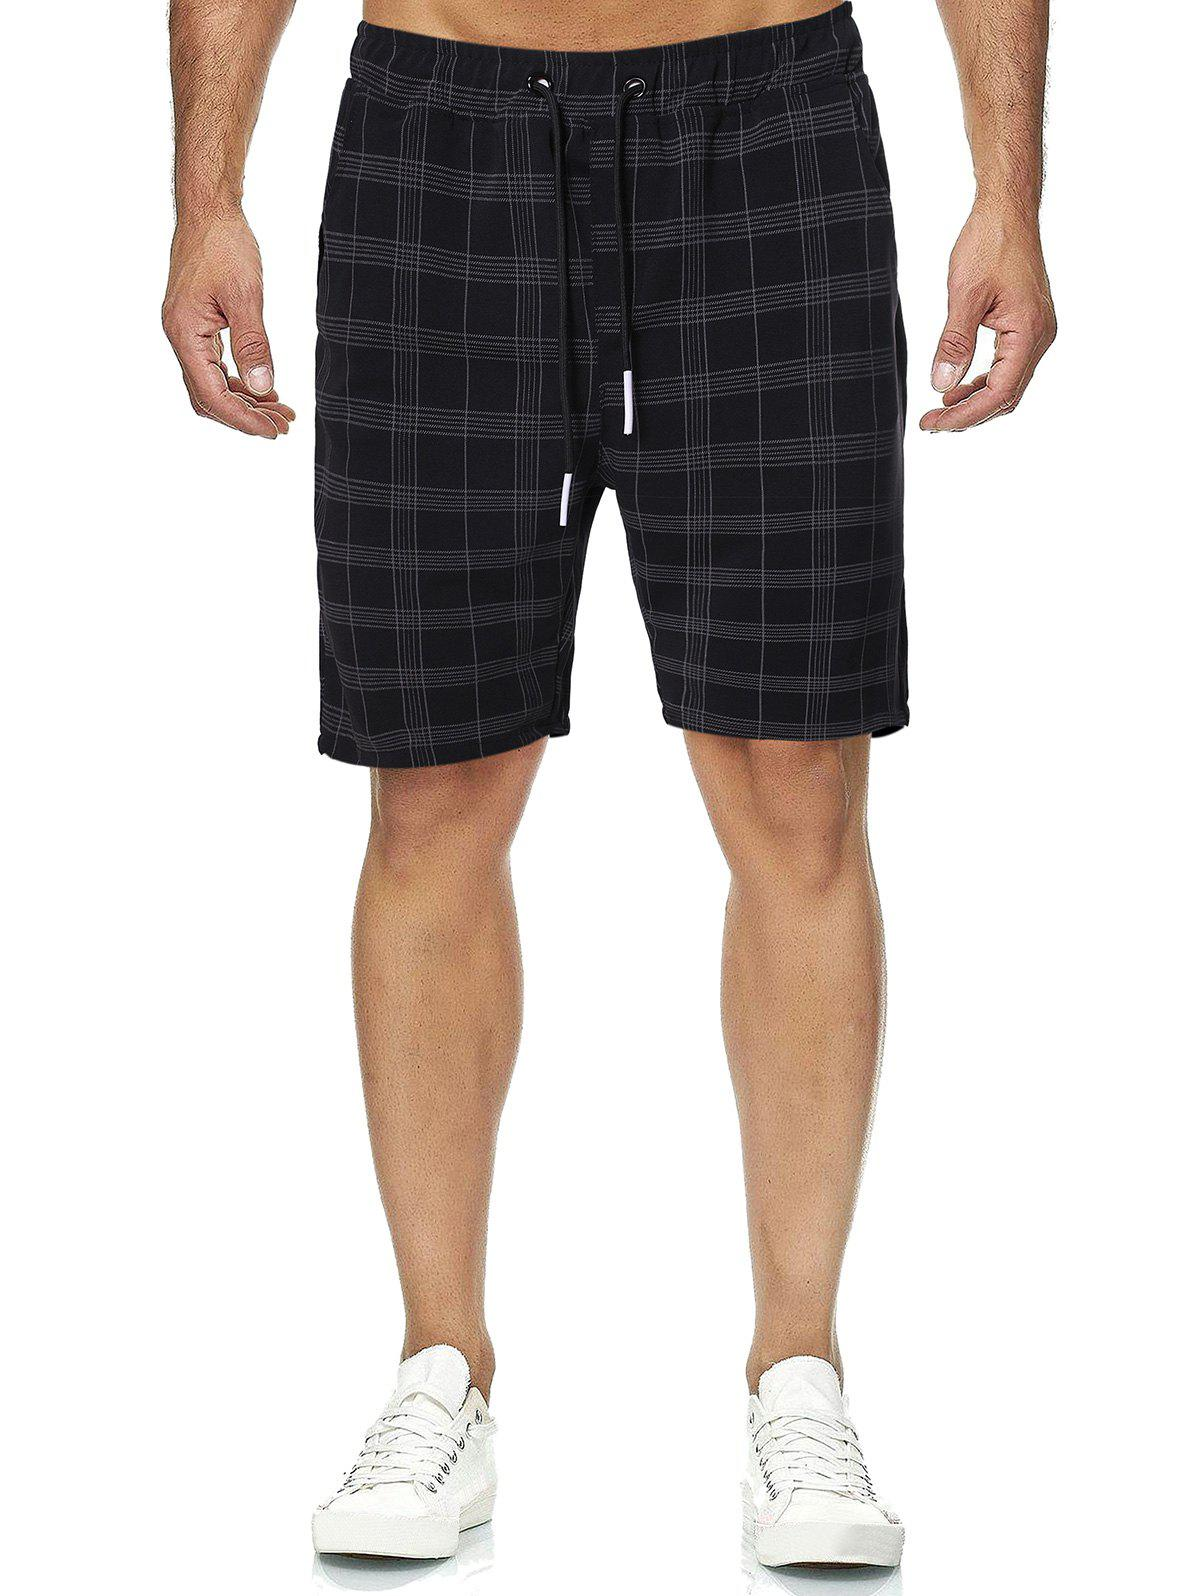 Buy Plaid Print Drawstring Casual Shorts